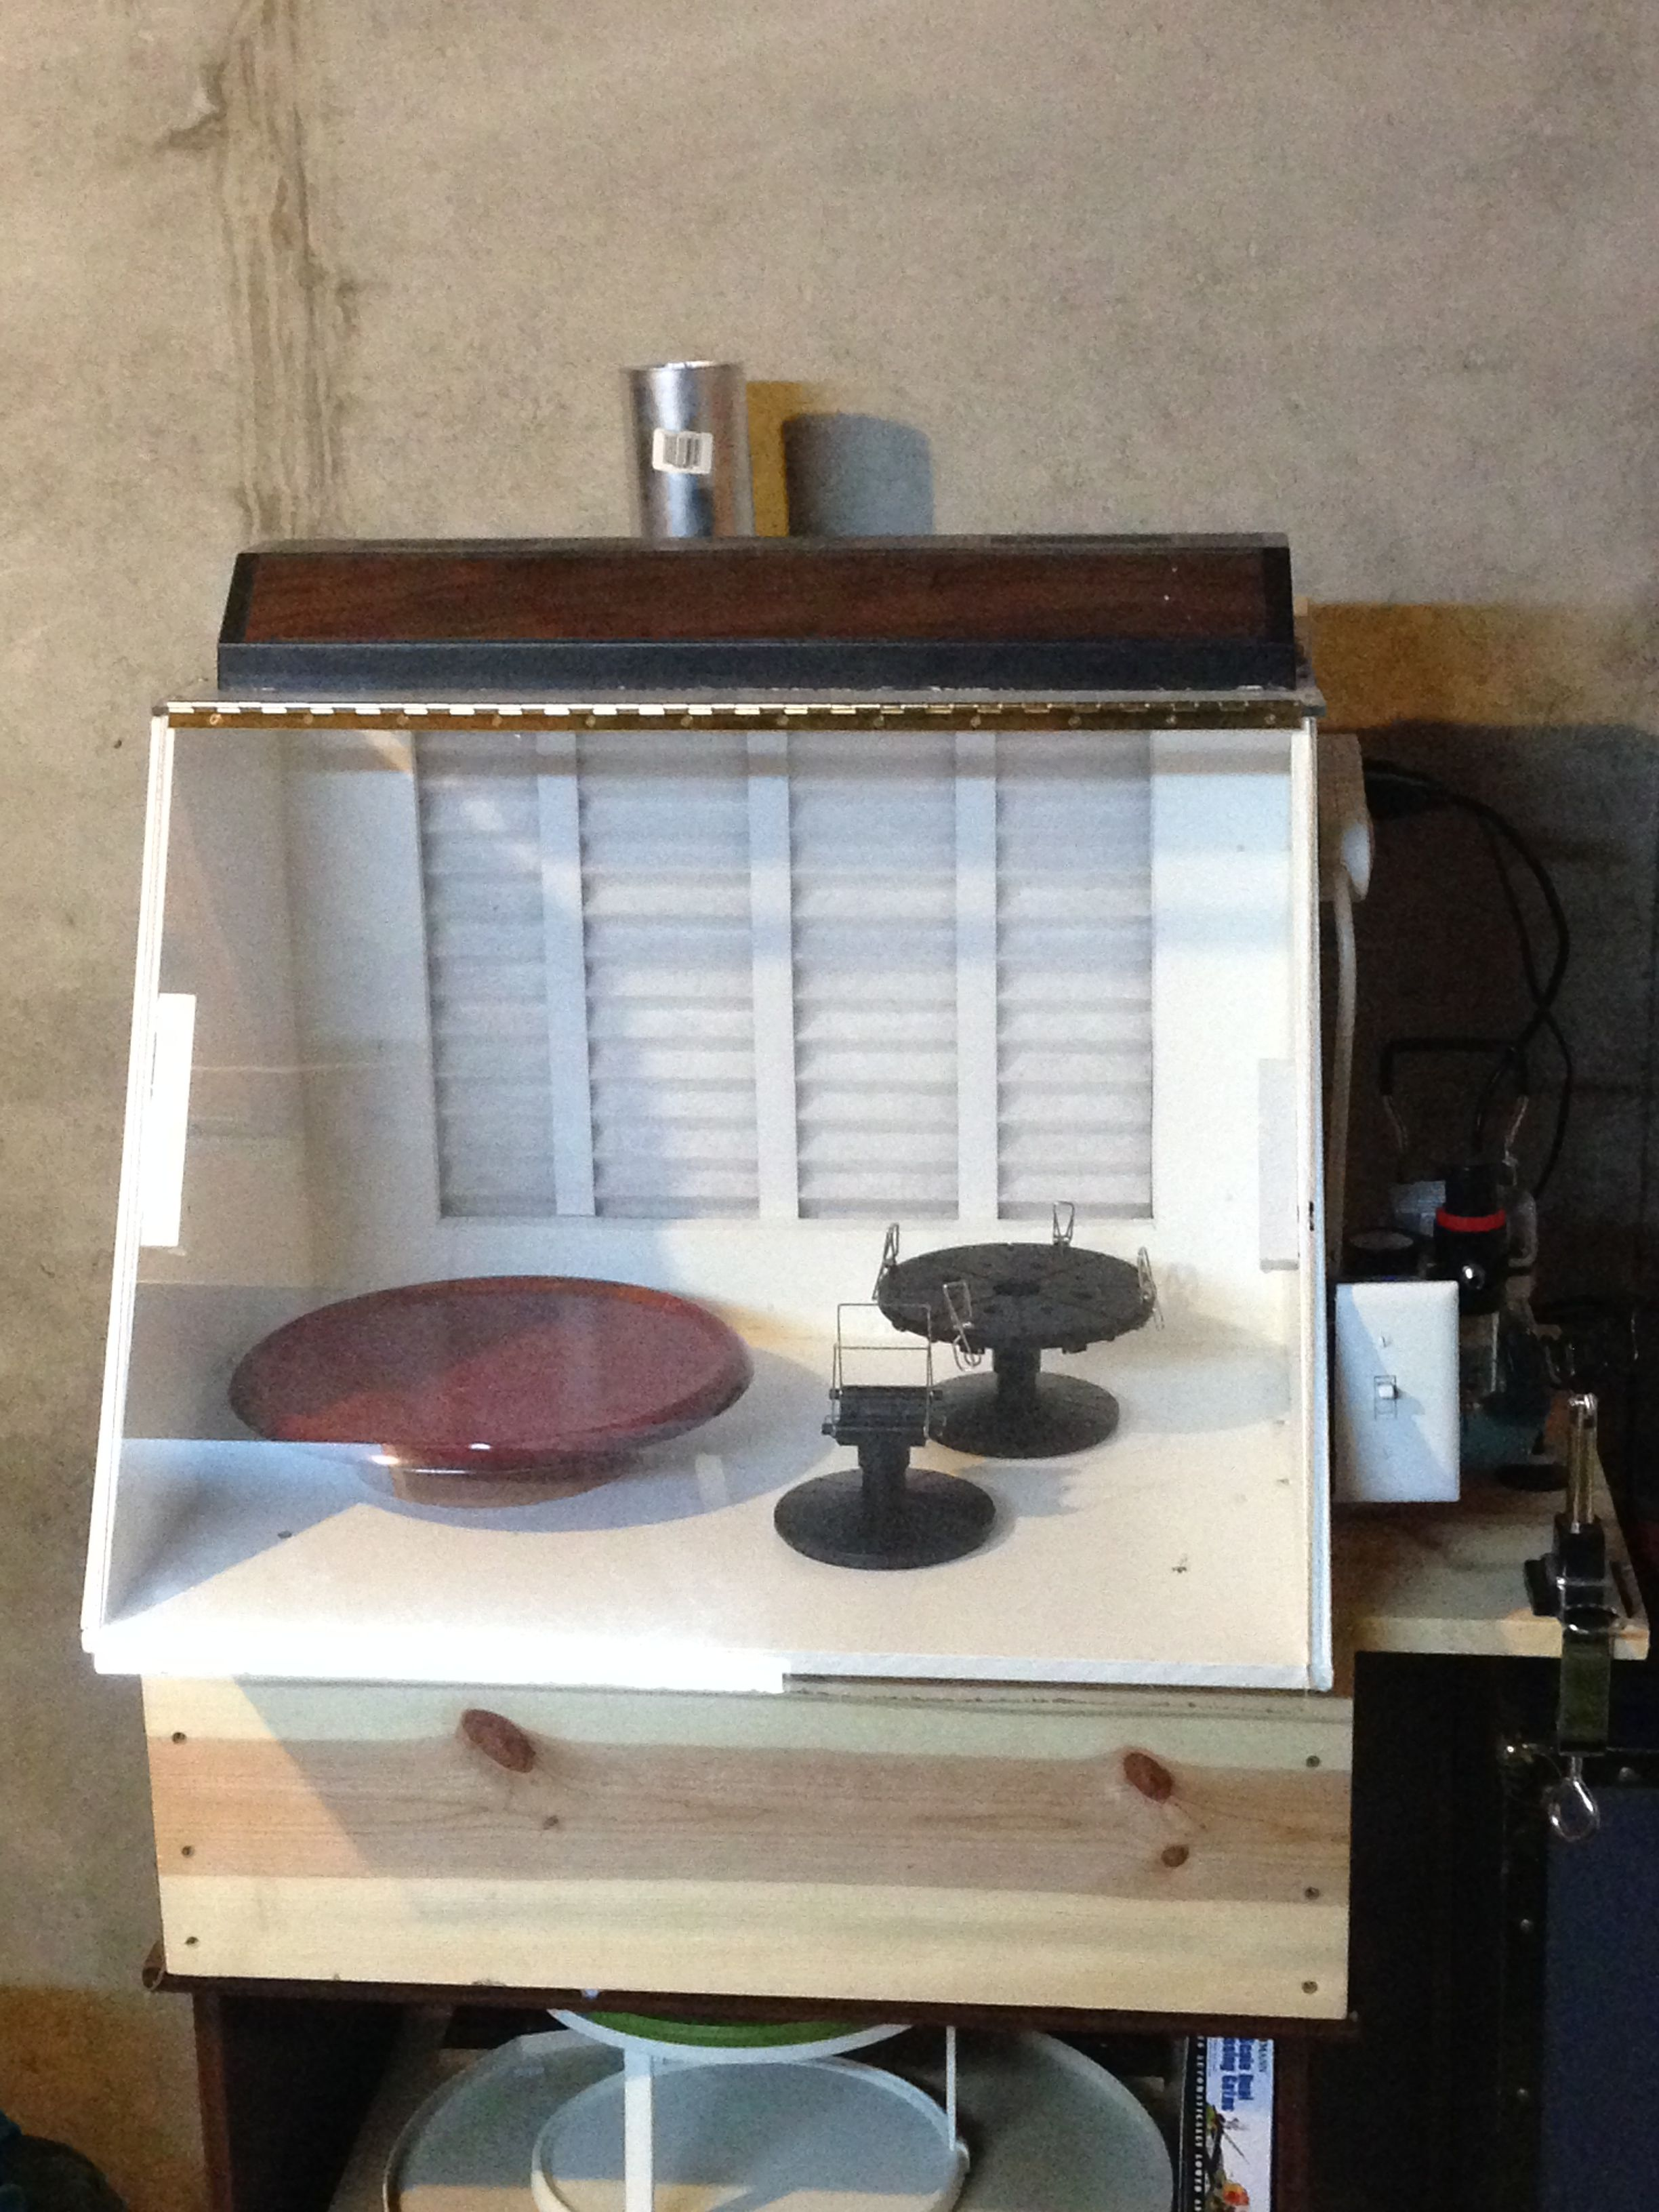 Custm paint booth Hobby benches, display cases and